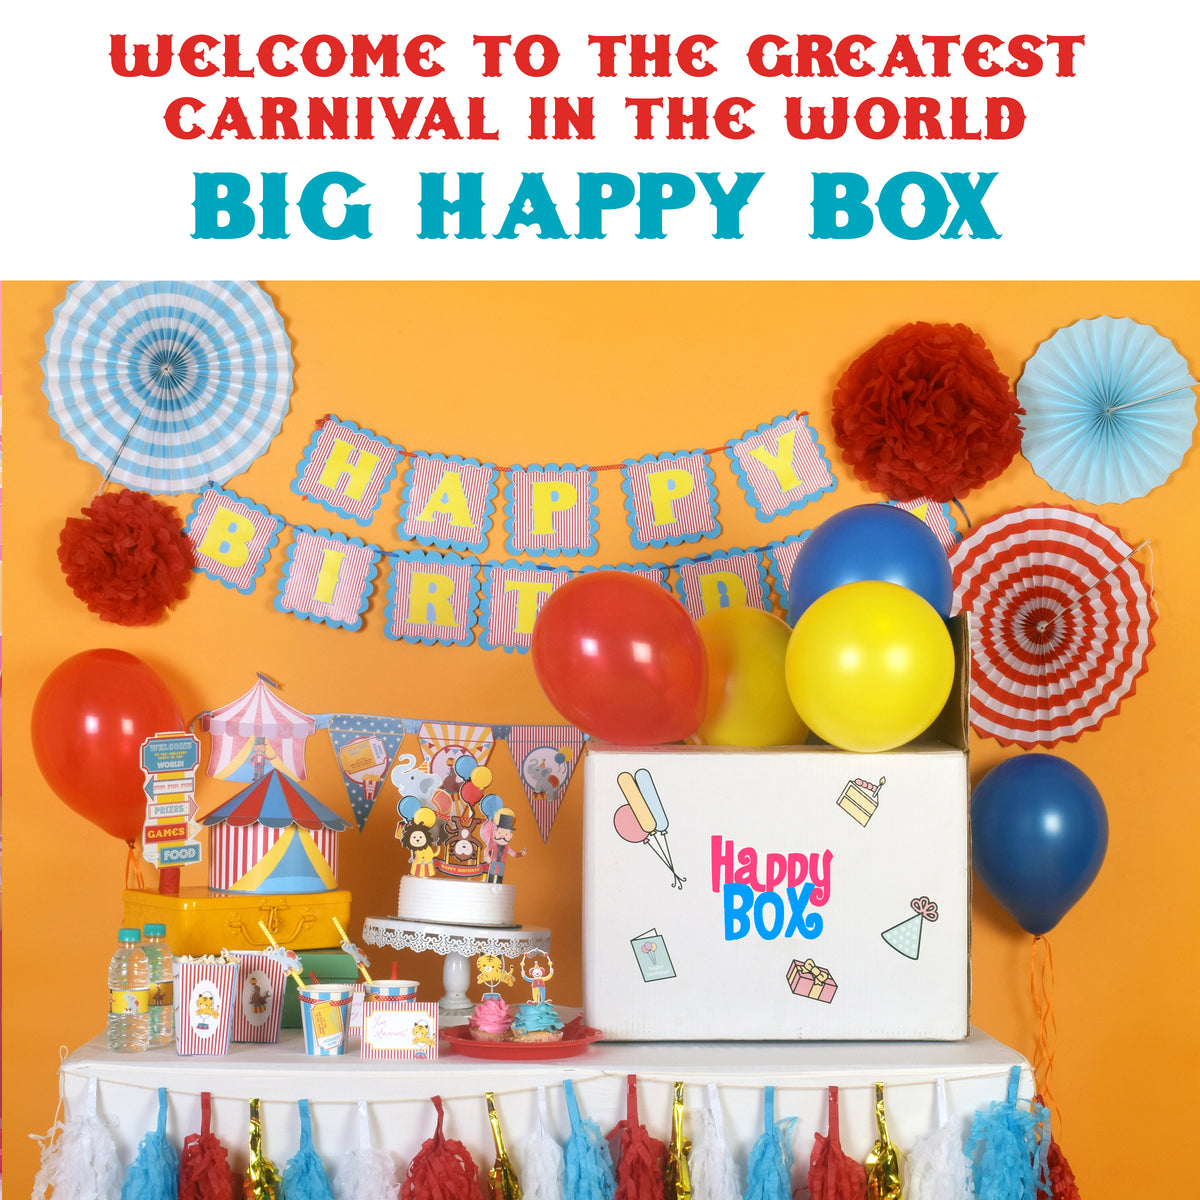 Welcome to the Greatest Carnival in the World! - Big Happy Box